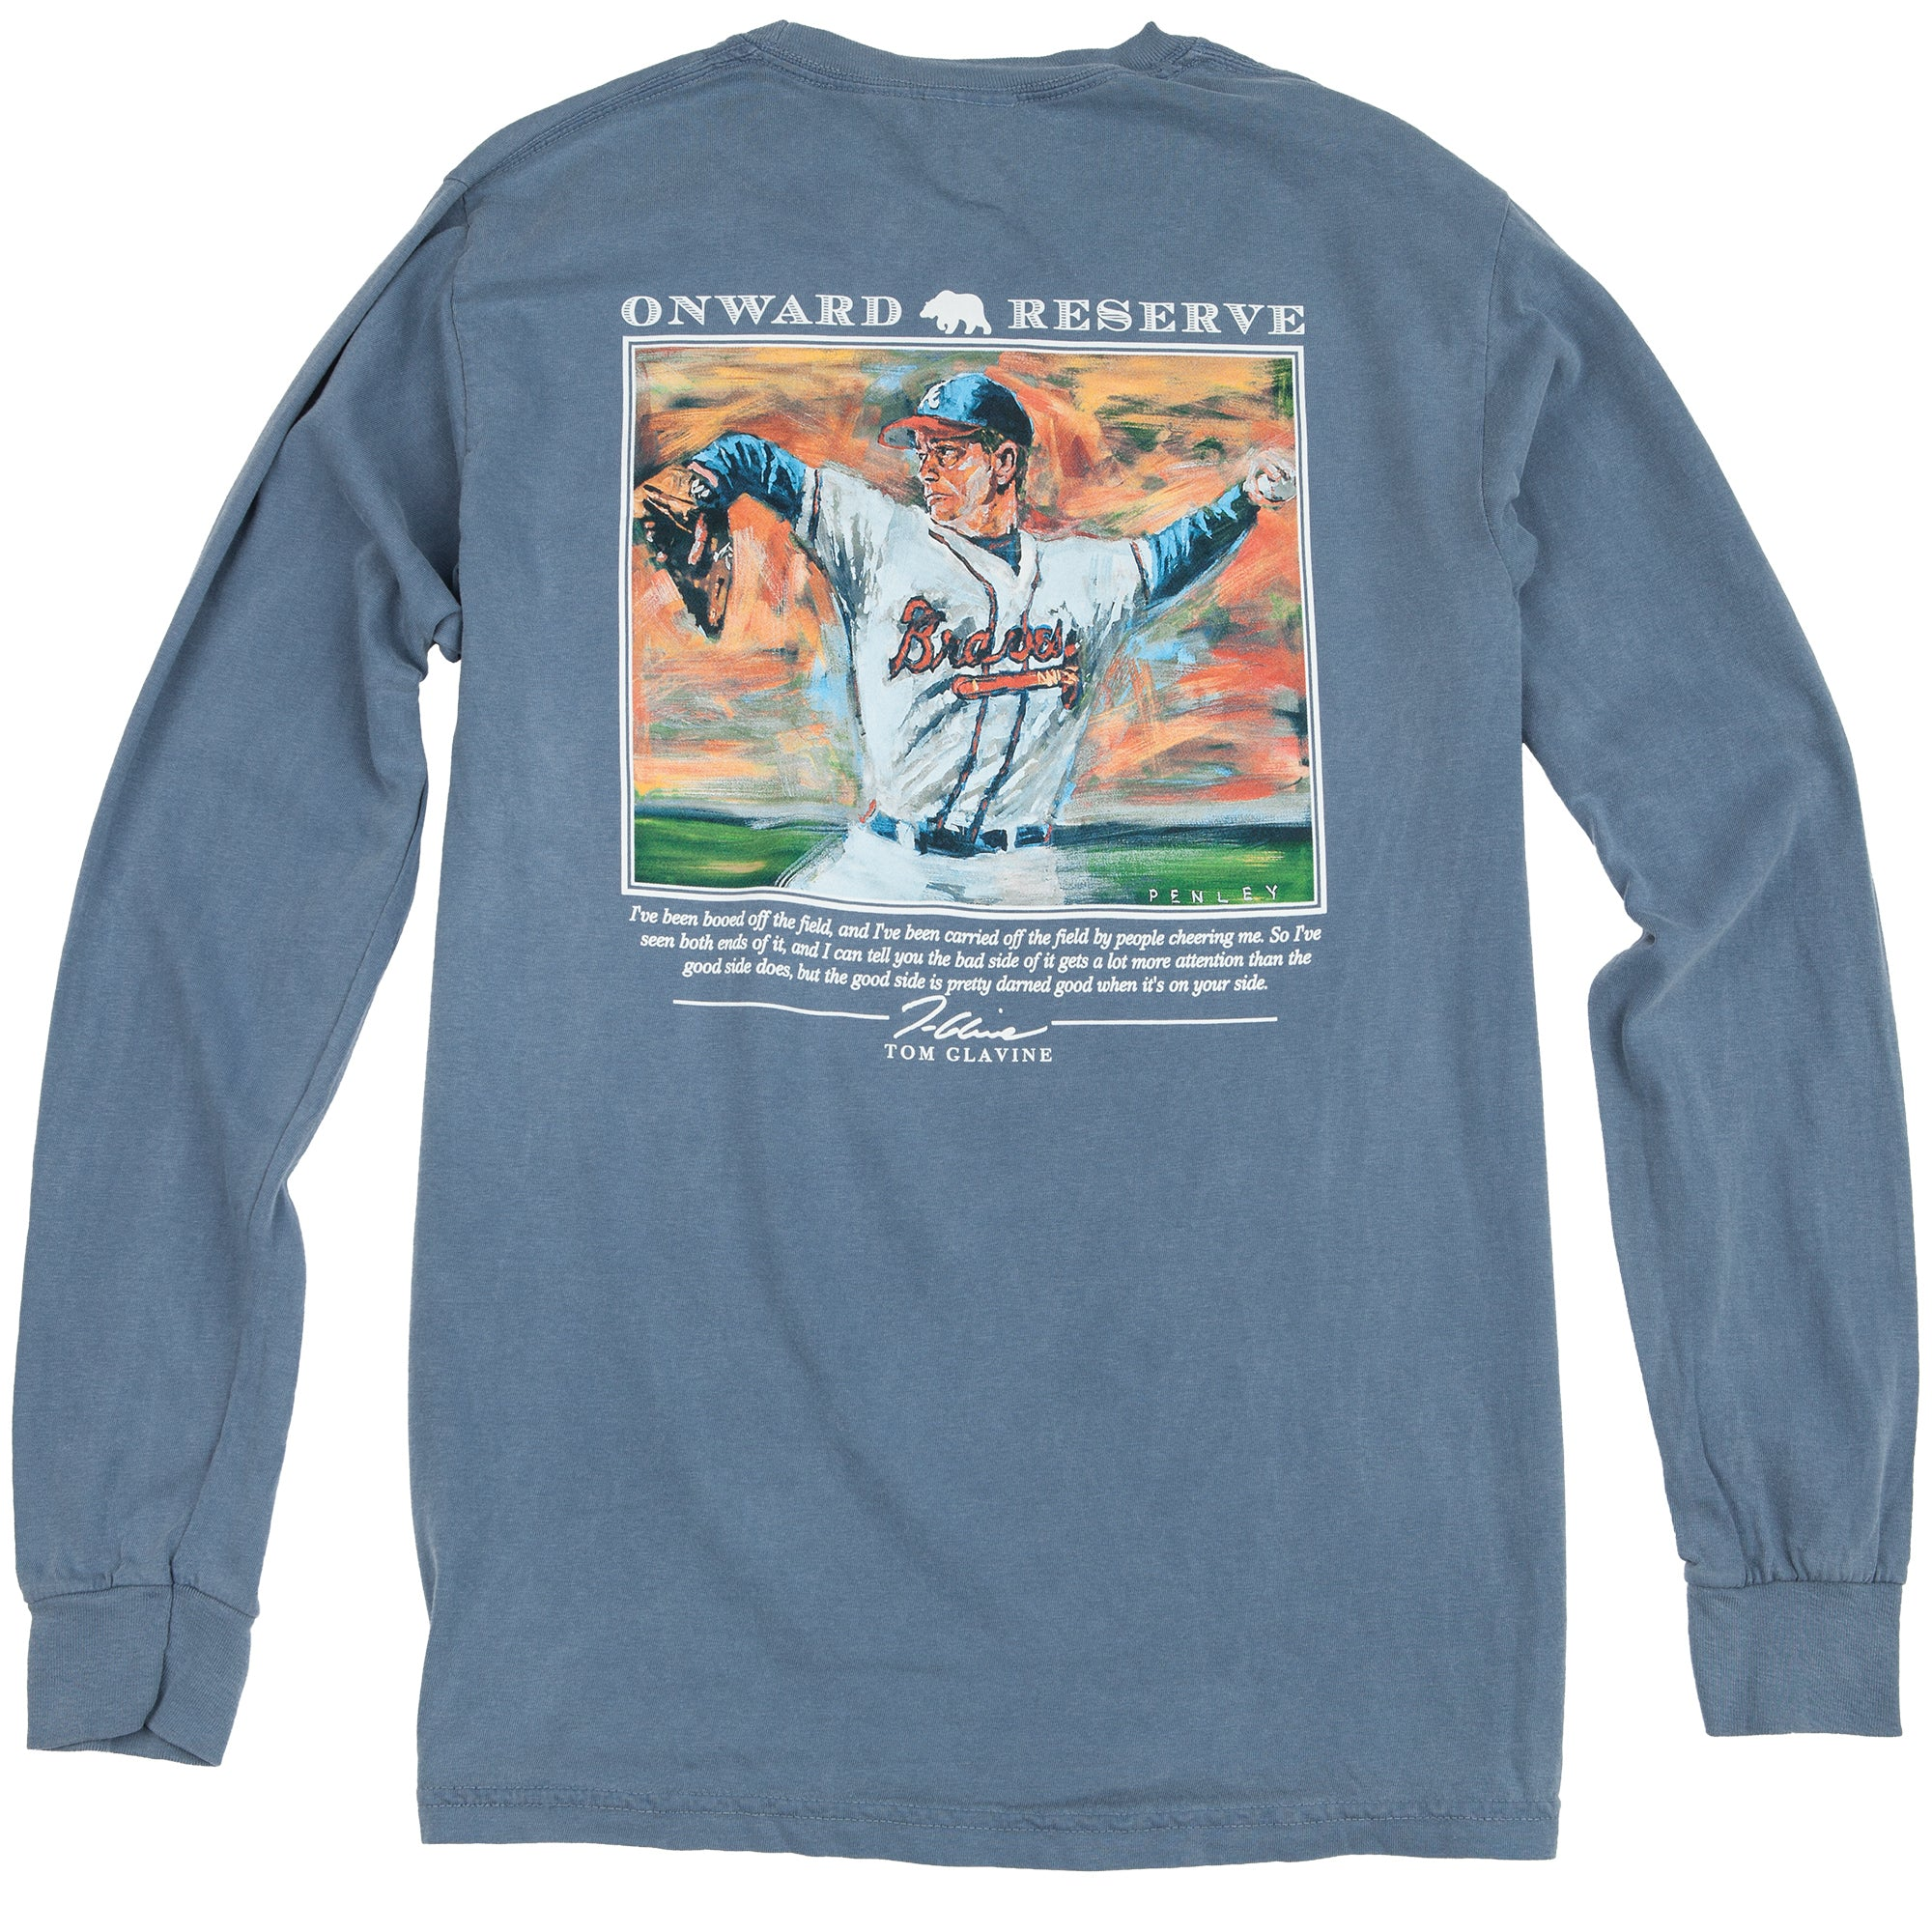 Tom Glavine Penley Long Sleeve Tee - OnwardReserve